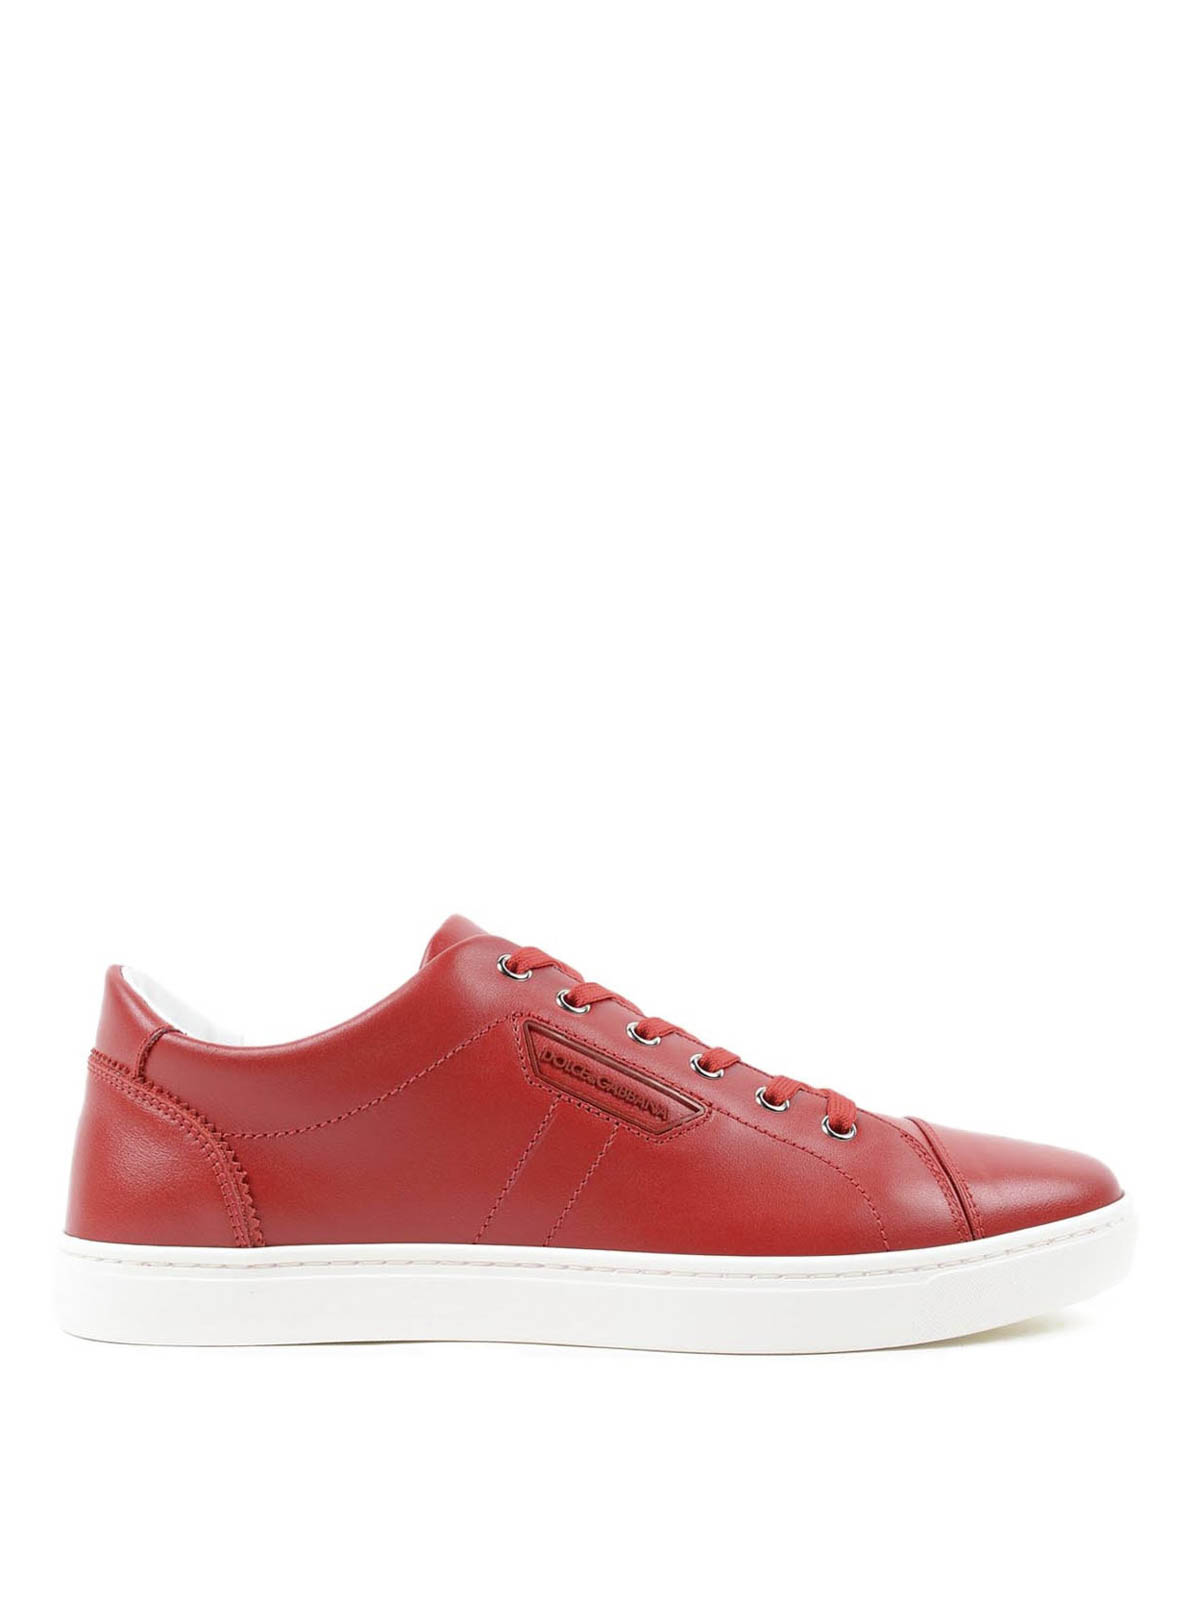 london leather sneakers by dolce gabbana trainers ikrix. Black Bedroom Furniture Sets. Home Design Ideas